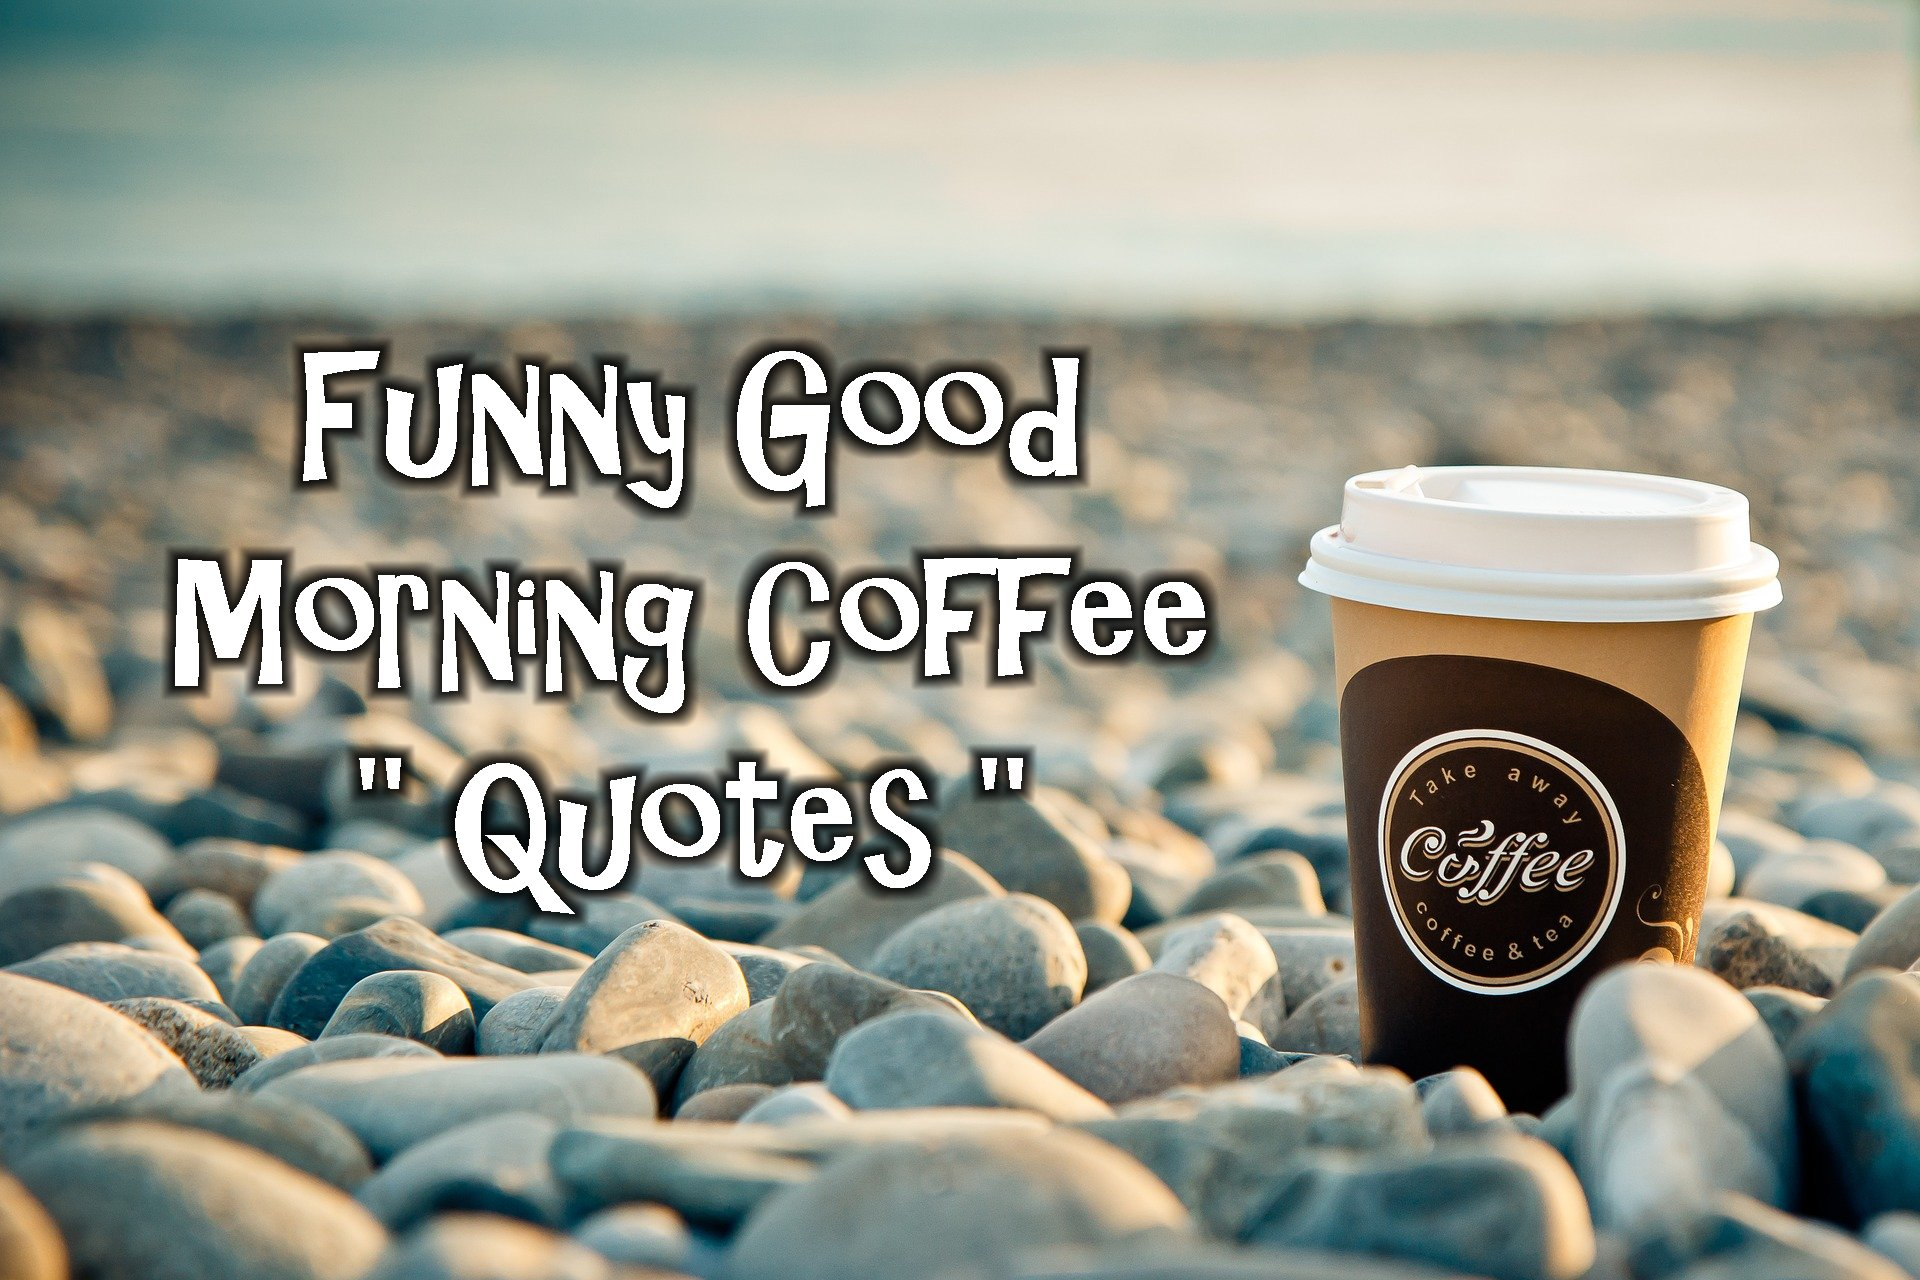 Coffee Quotes And Pictures: Funny Good Morning Coffee Quotes